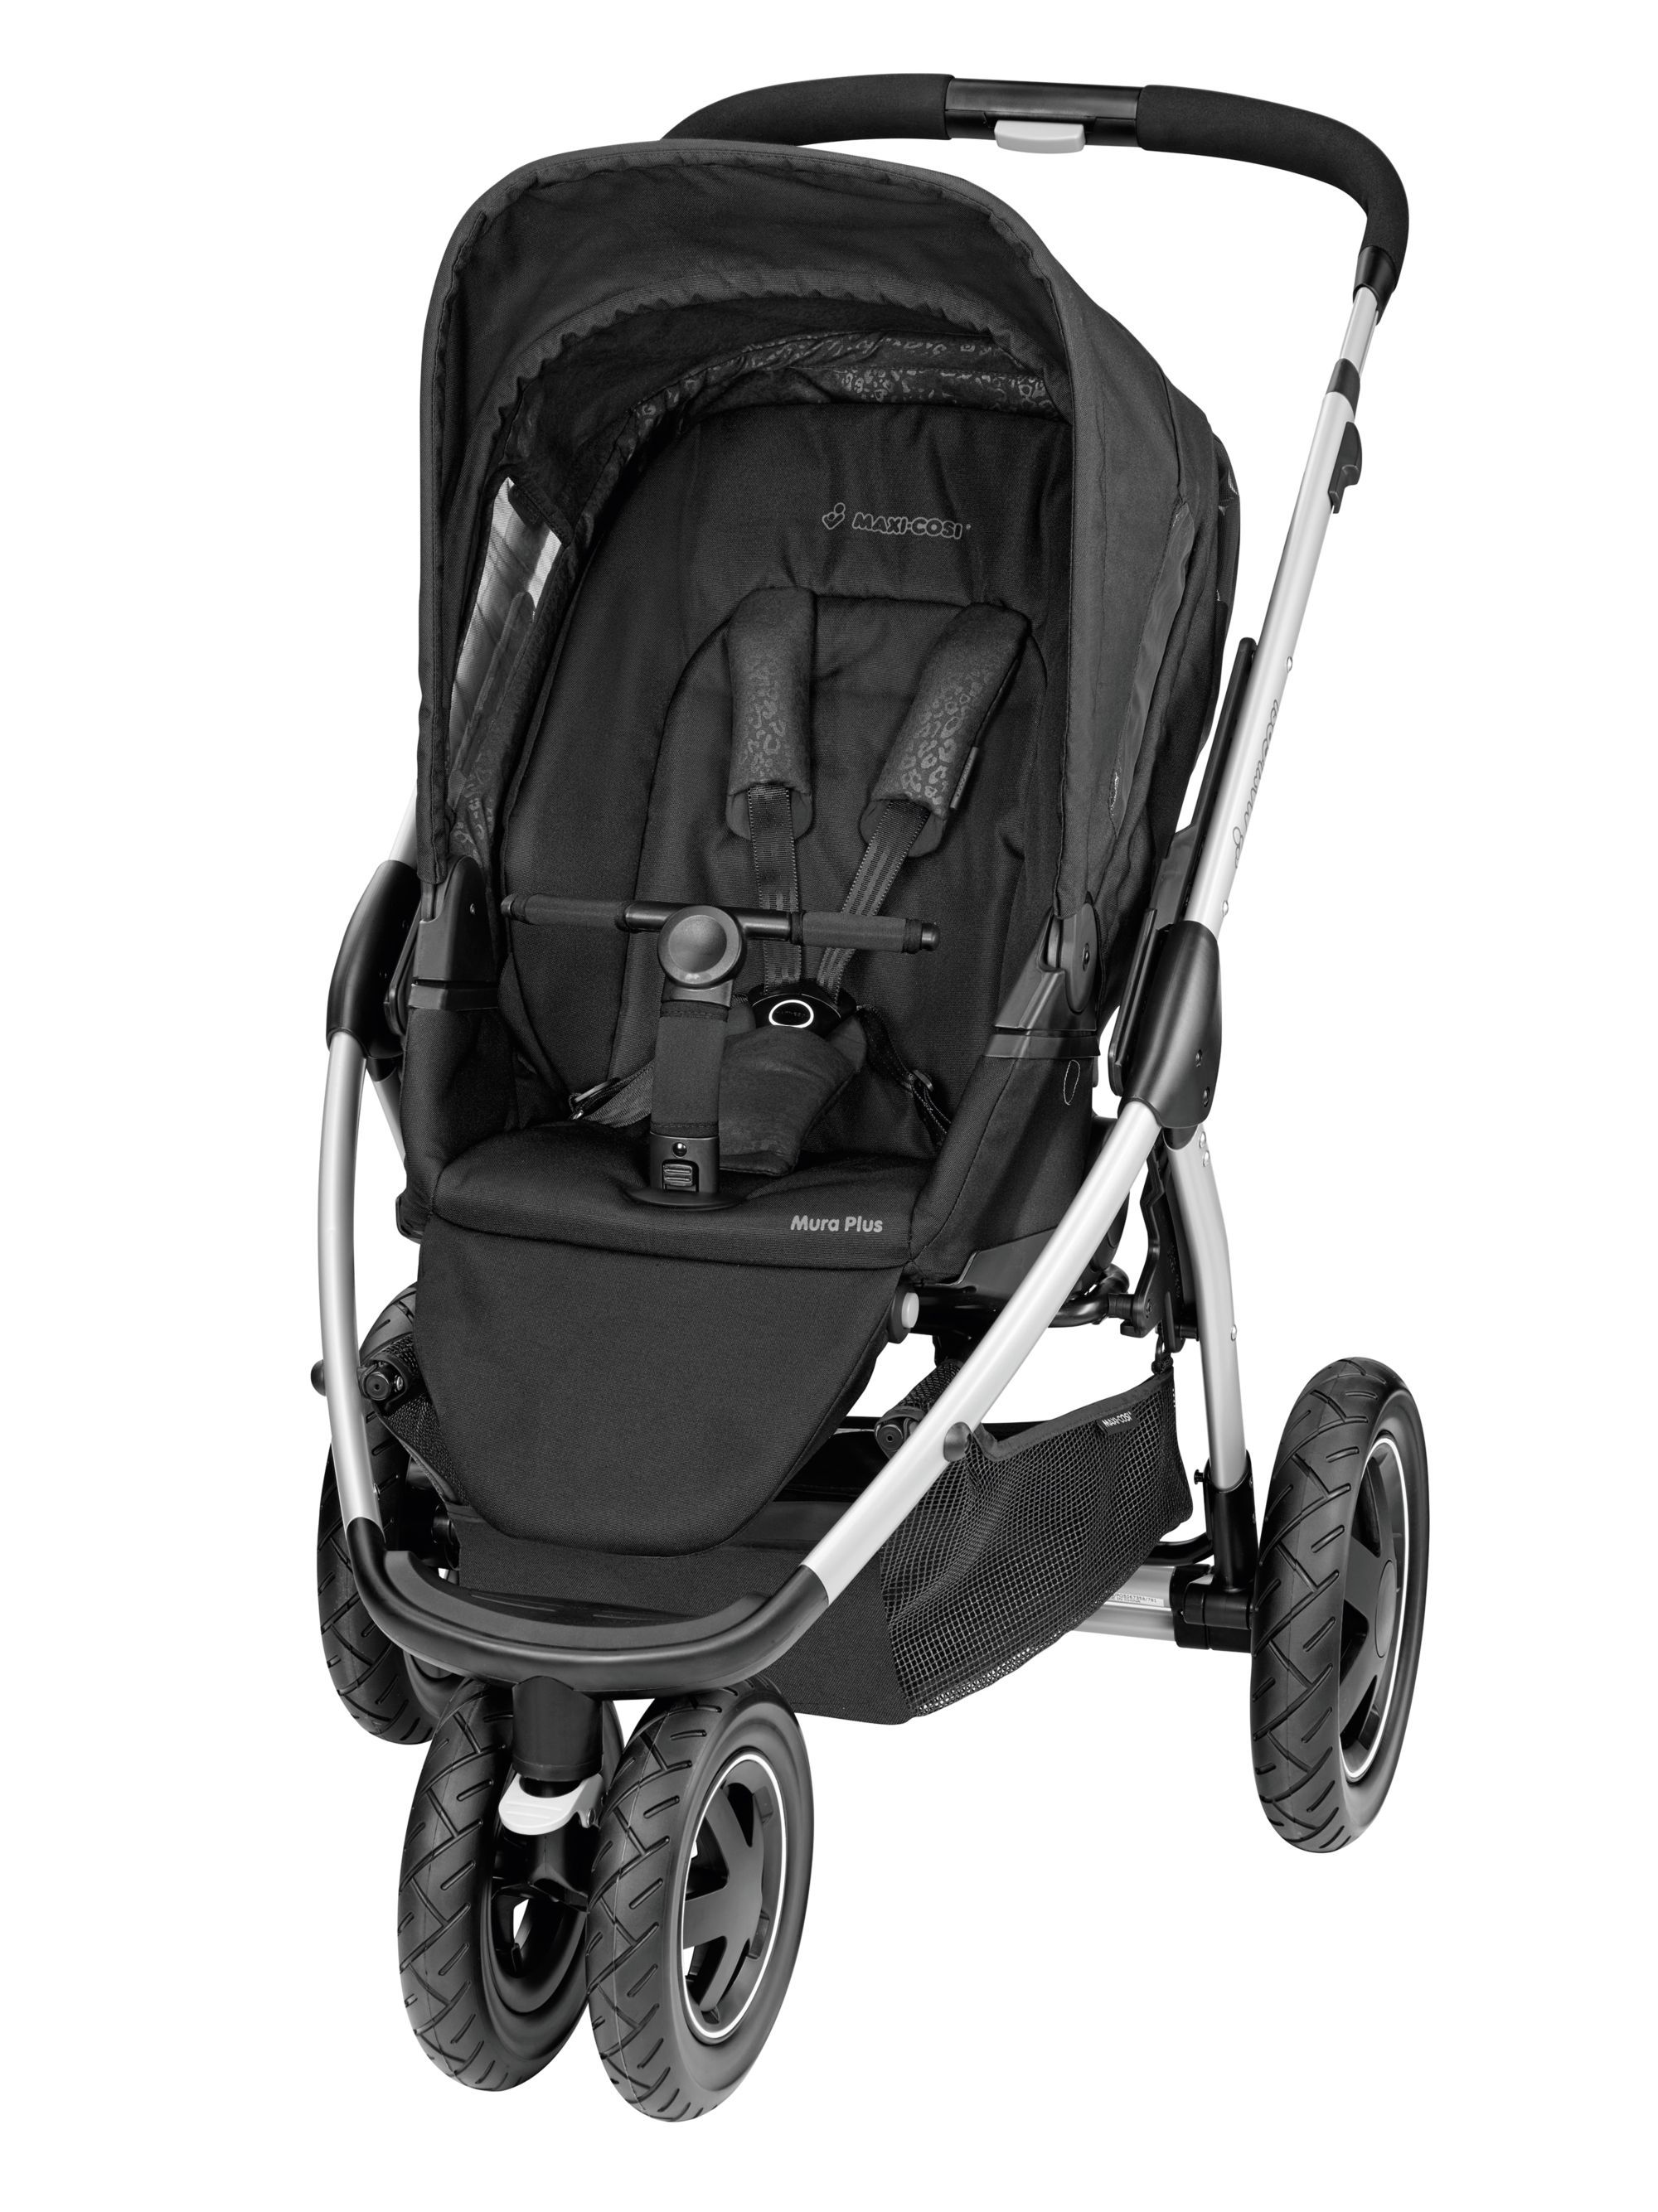 Komfort Buggy Book Von Peg Perego Maxi Cosi Mura Plus 3 Wheeler Pushchair Modern Black